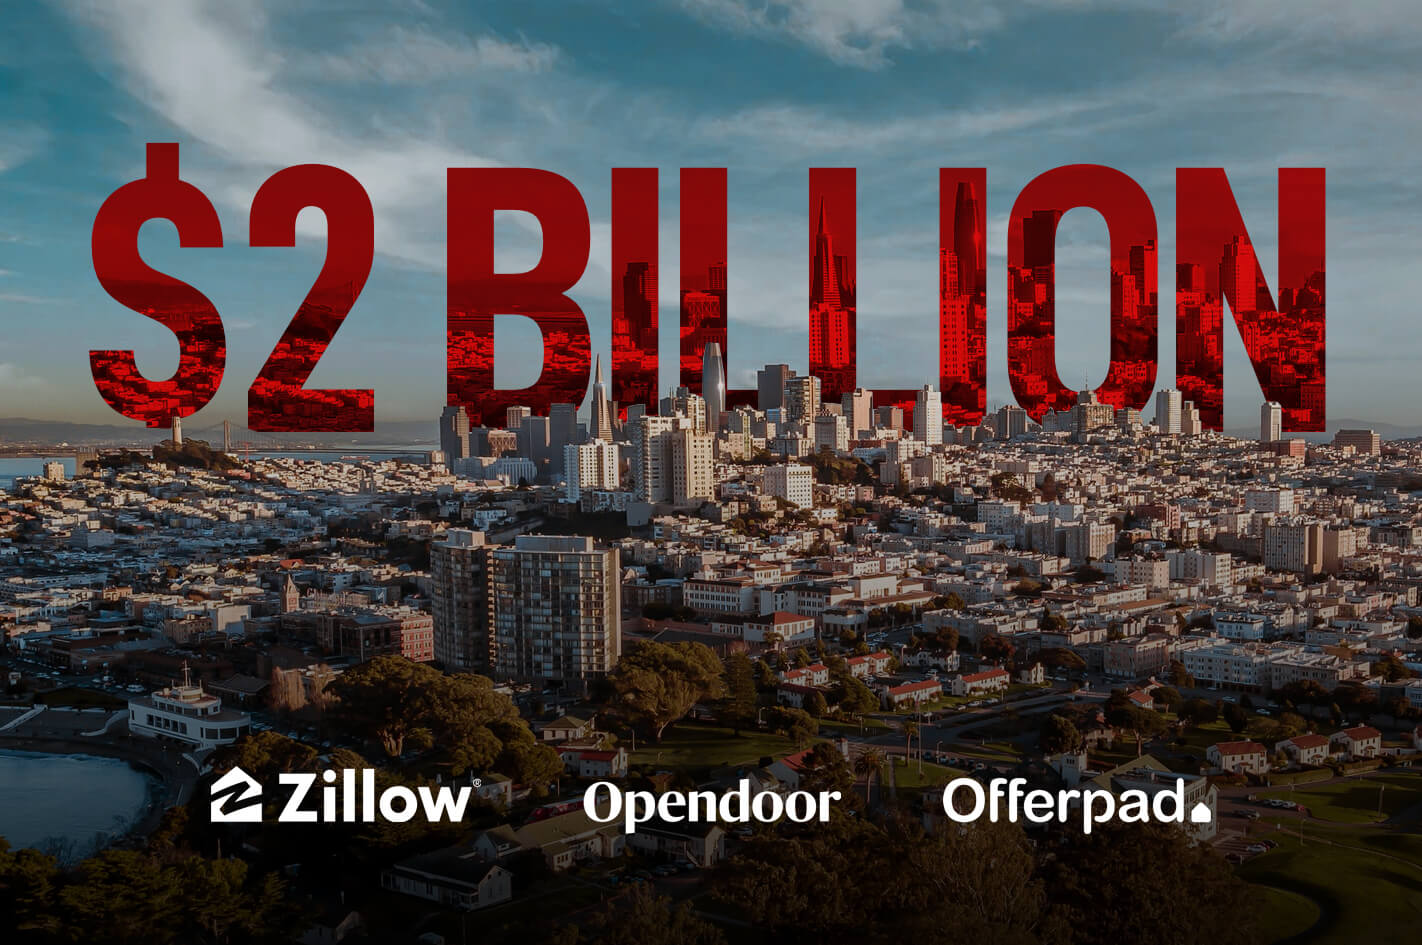 iBuyer's Zillow, OpenDoor, and Offerpad have $2B worth of real estate, what happens if the housing market collapses?